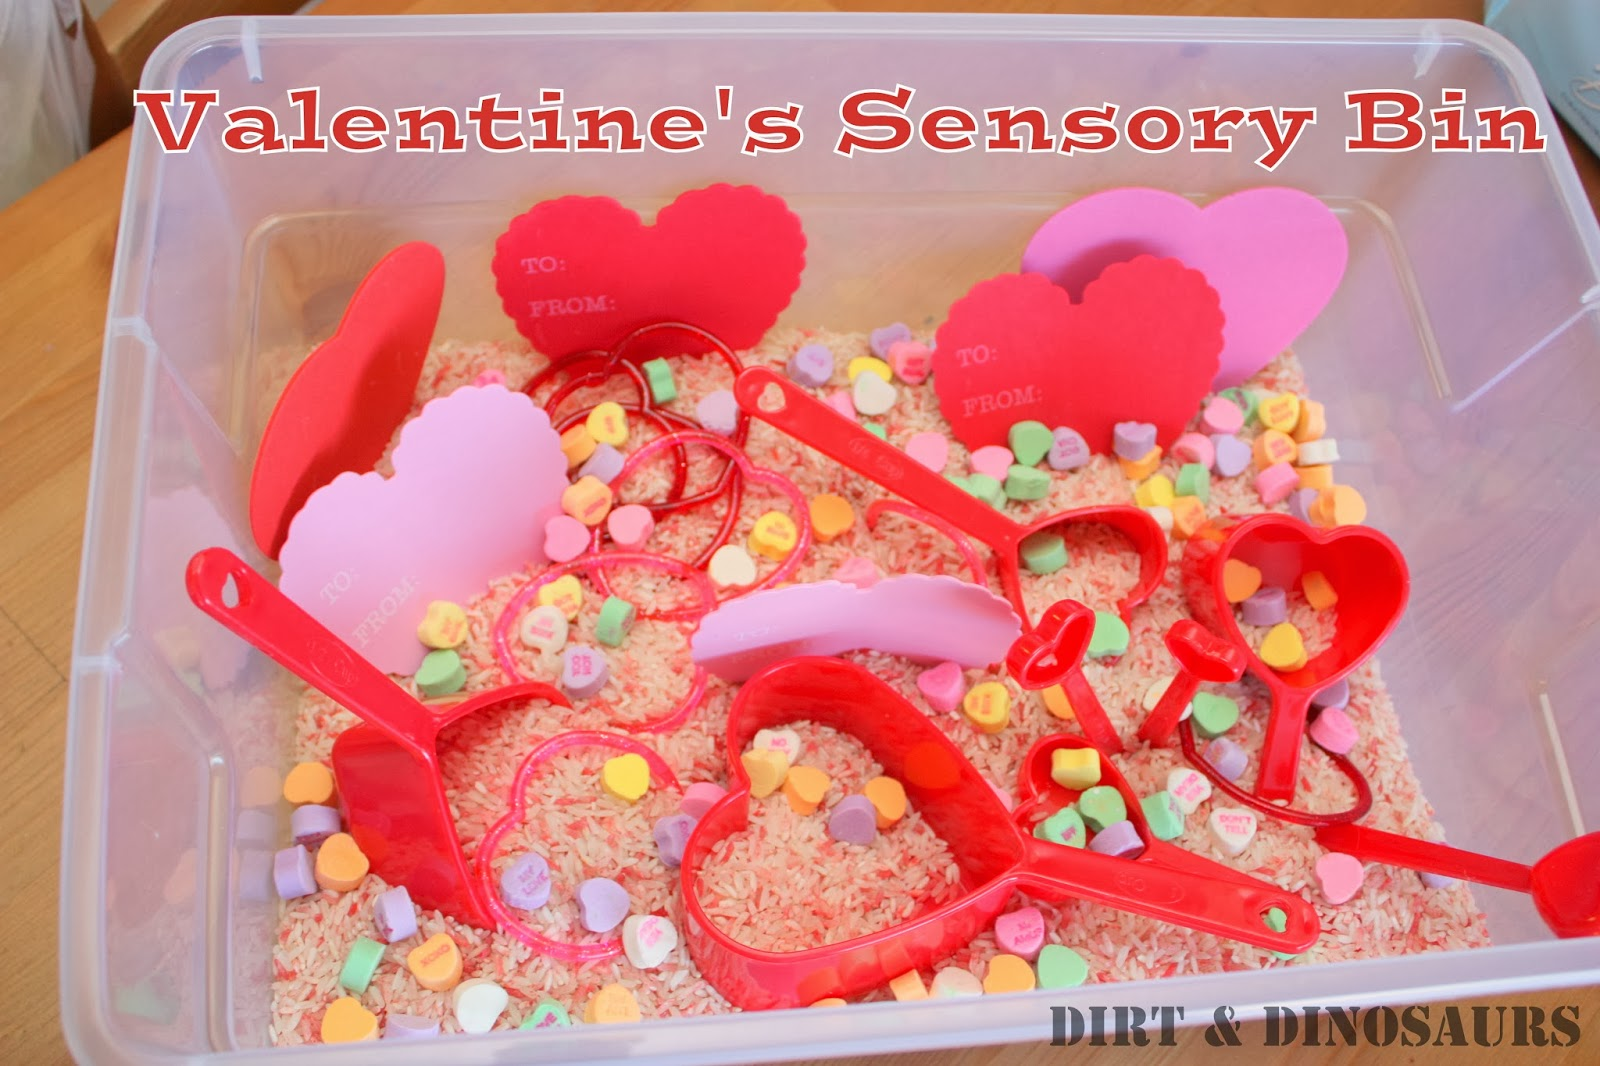 Simple Valentine's Day Sensory Bin. Click for more #sensory bin ideas for #ValentinesDay